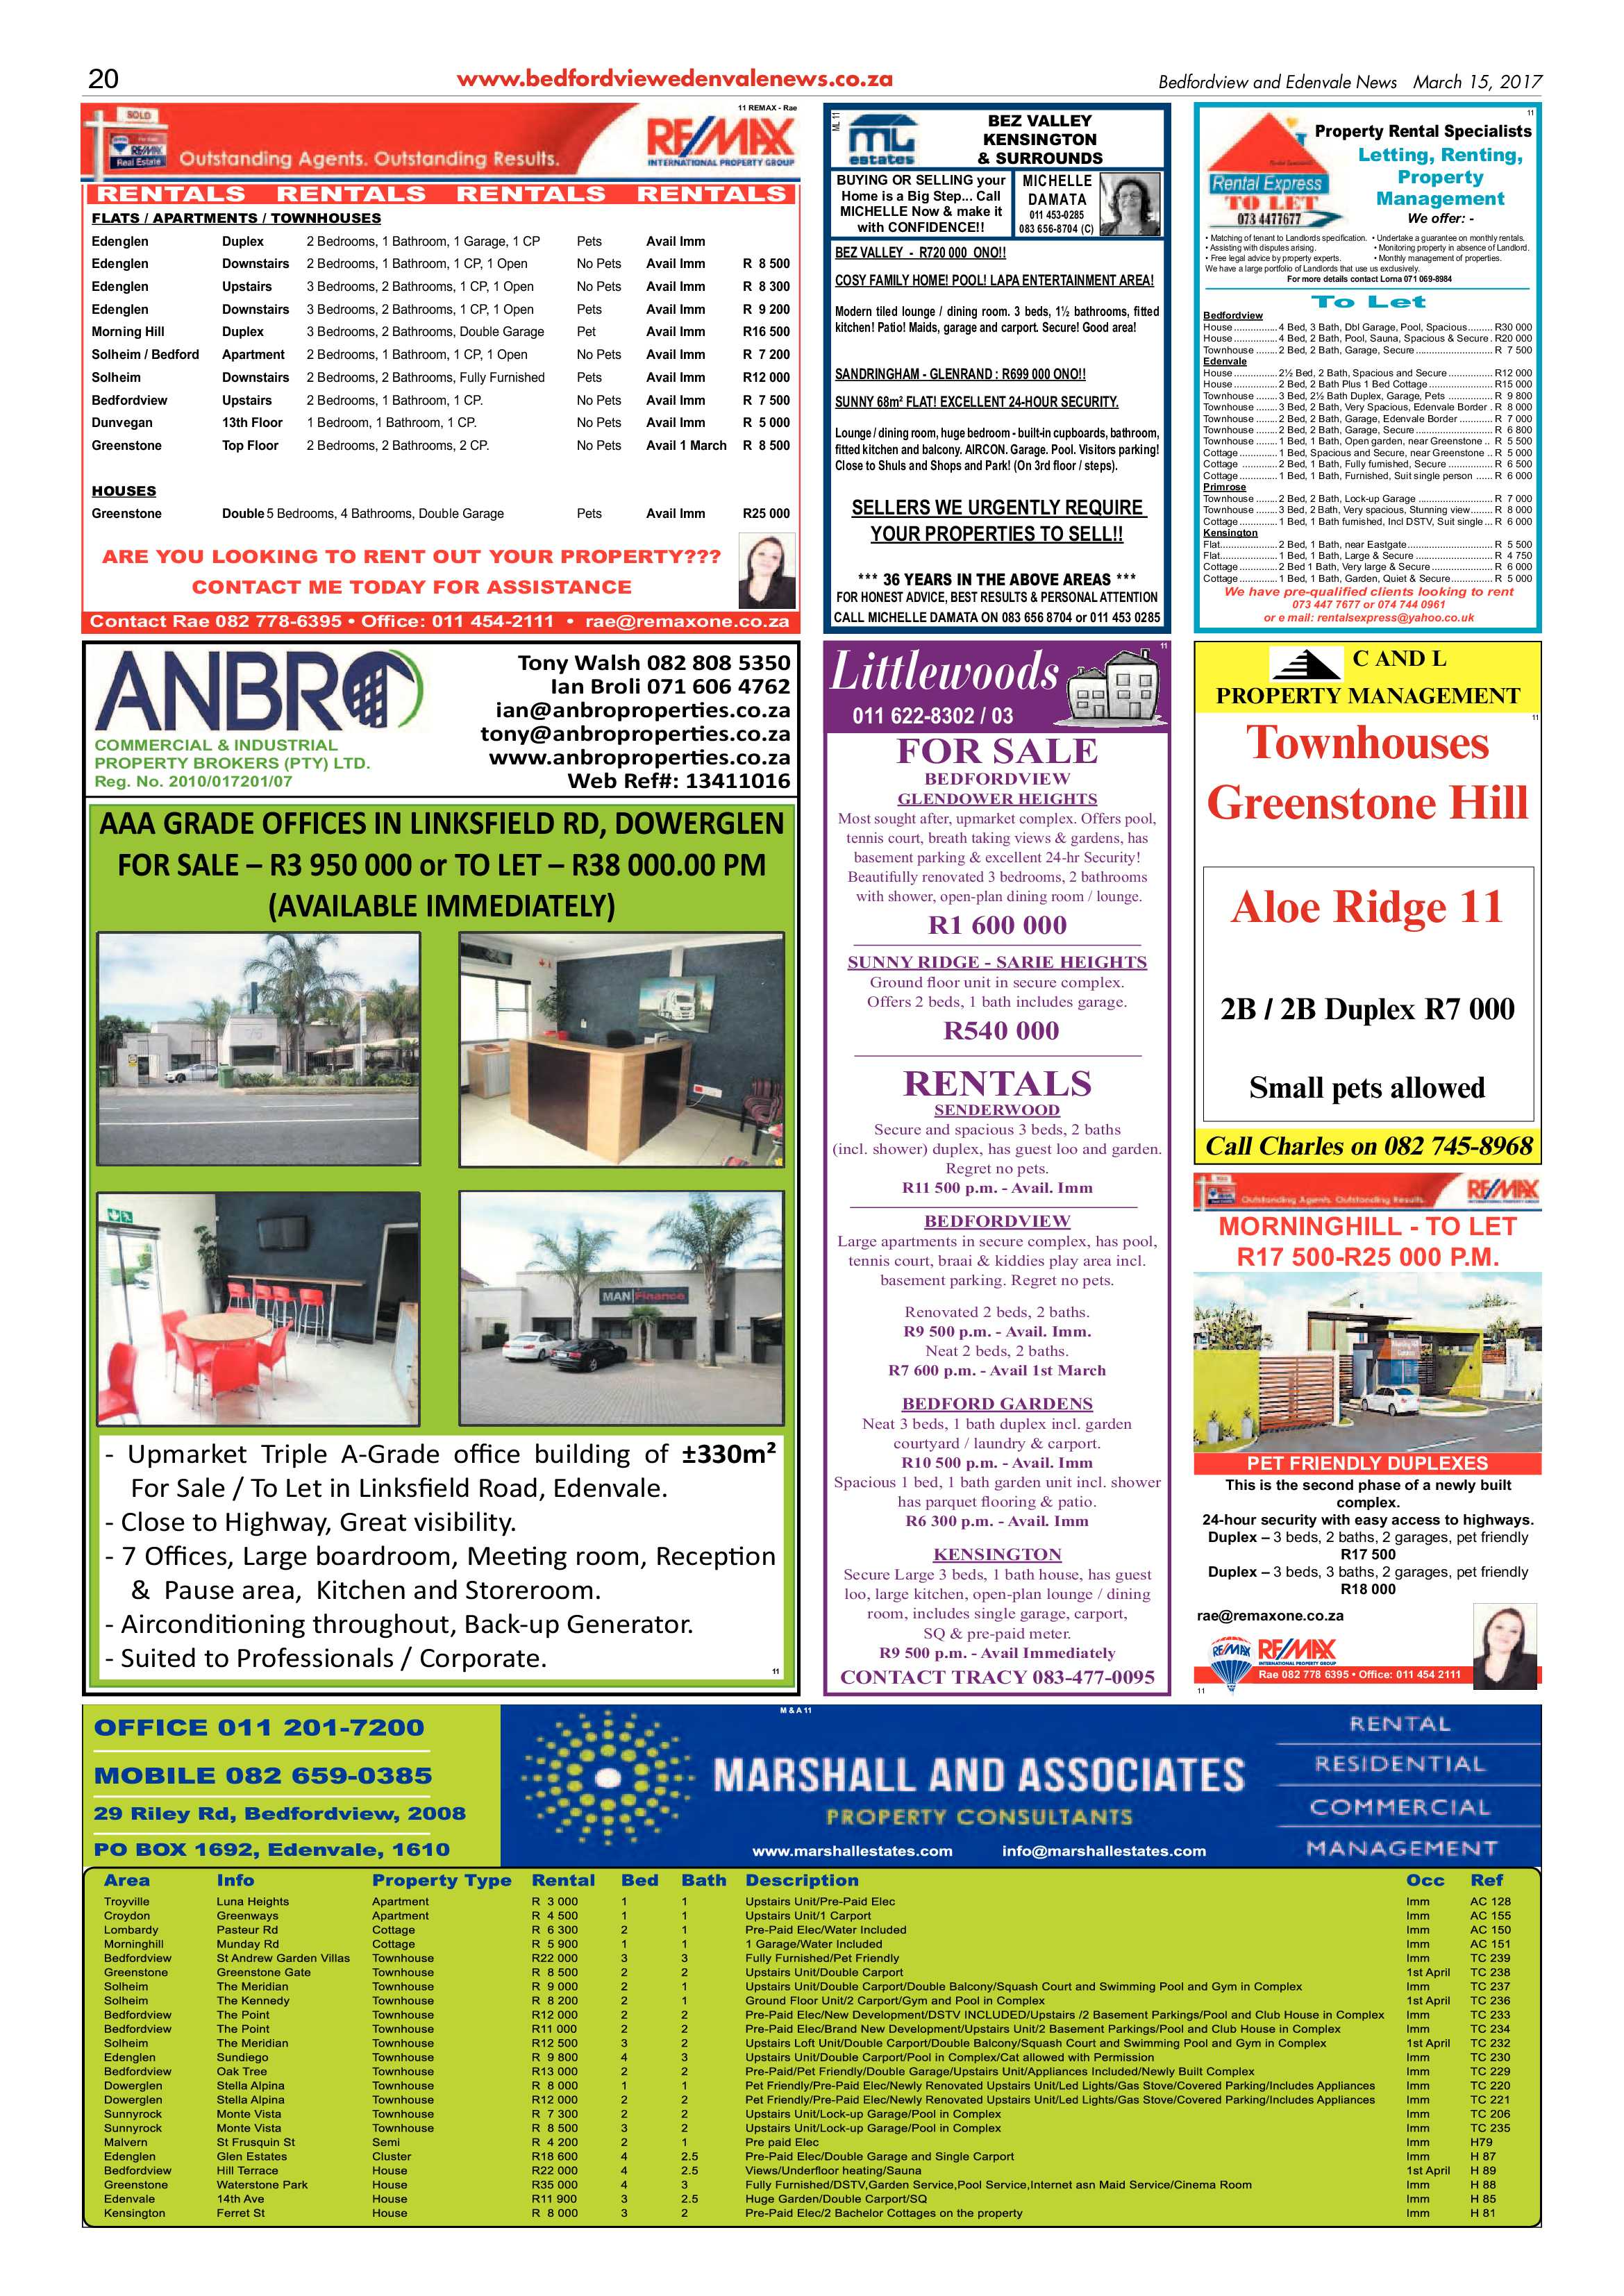 bedfordview-edenvale-news-15-march-2017-epapers-page-20